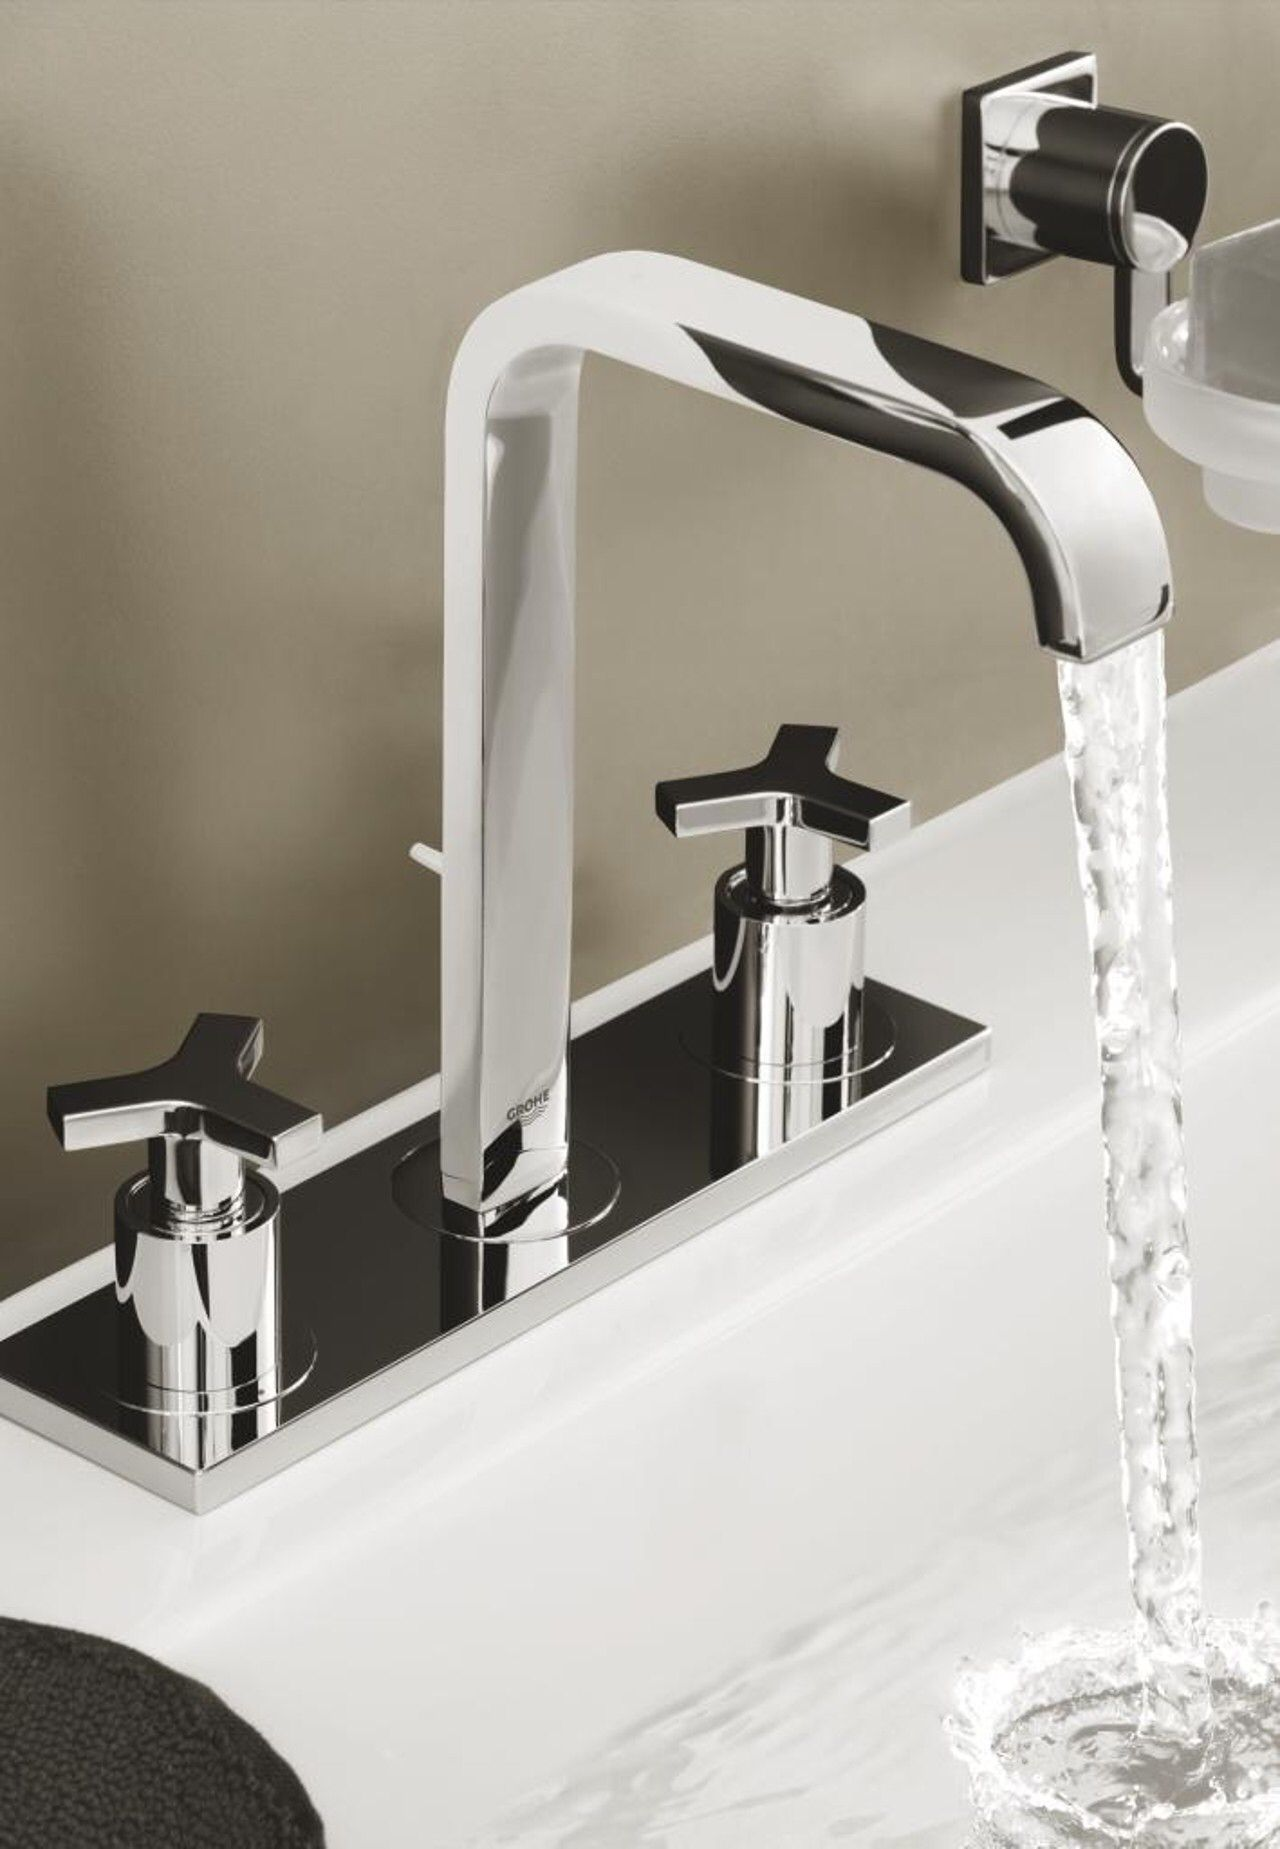 GROHE SPA Allure Collection   Faucet   Pinterest   Faucet, Family ...